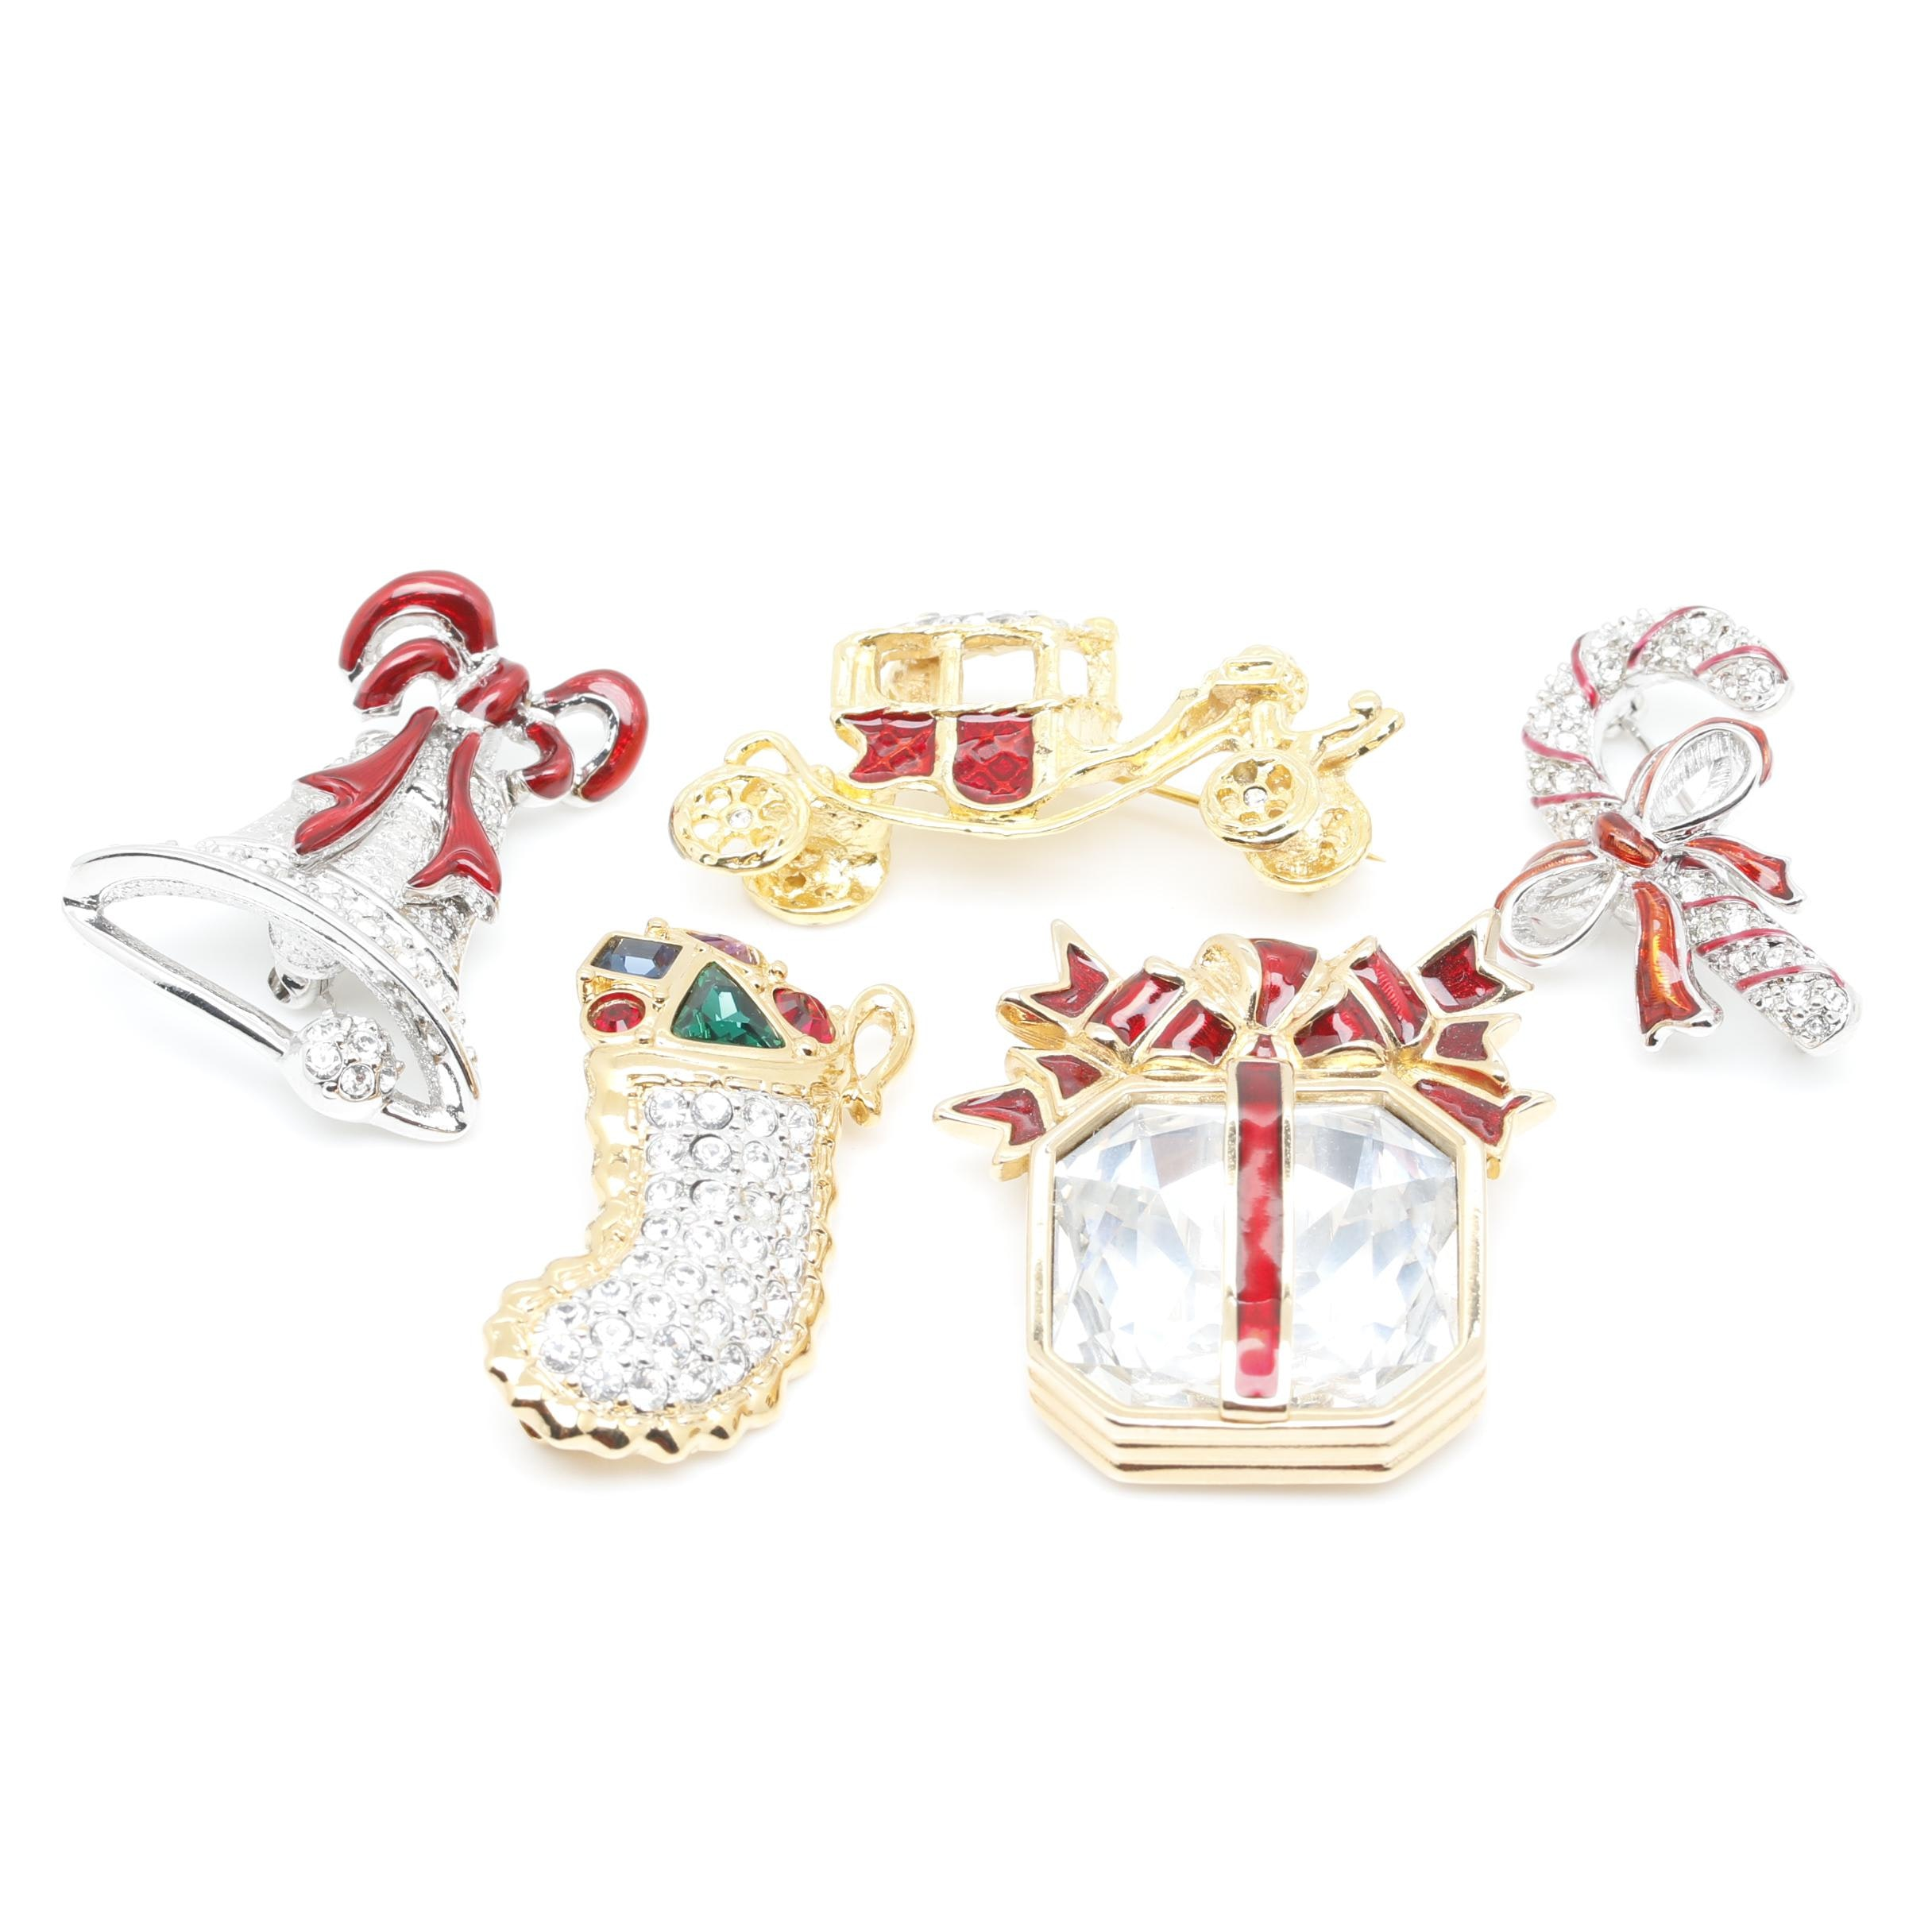 Gold and Silver Tone Christmas Brooches Featuring Swarovski